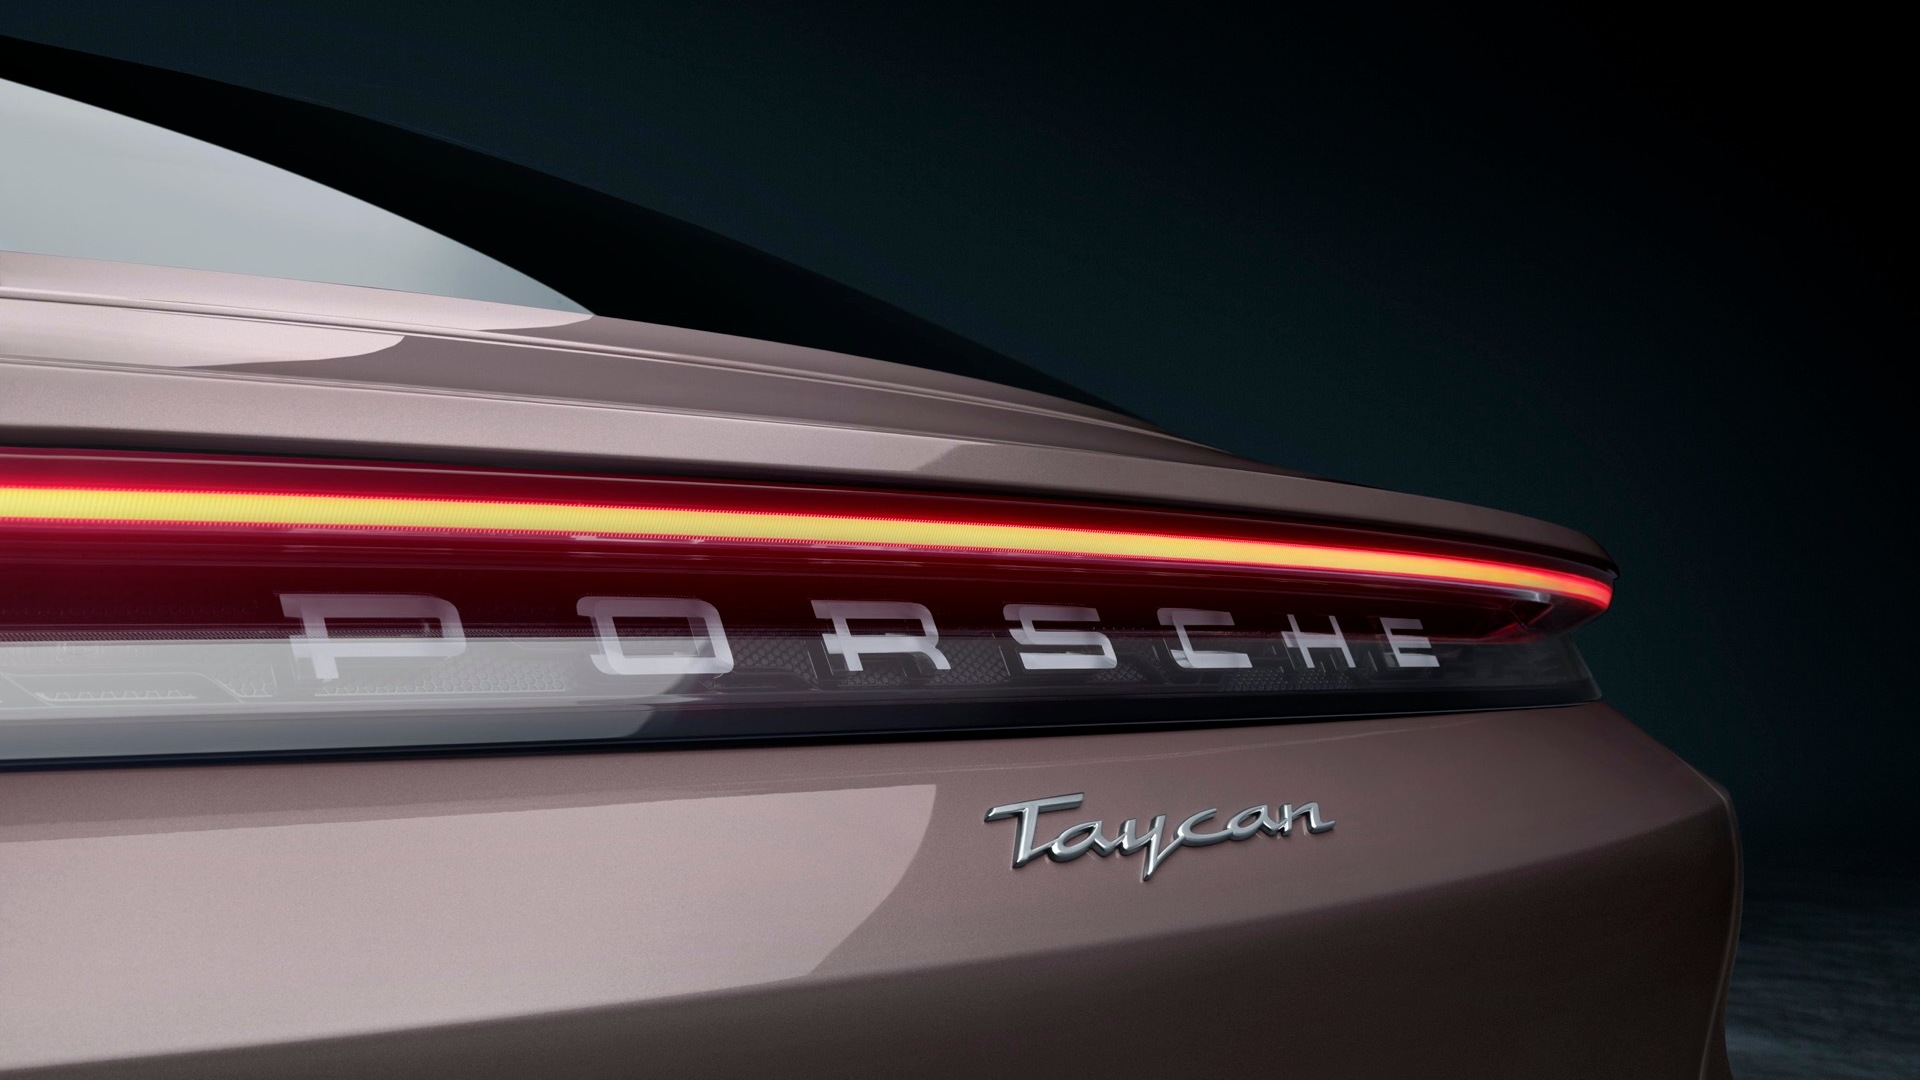 2021 Porsche Taycan rear-wheel drive